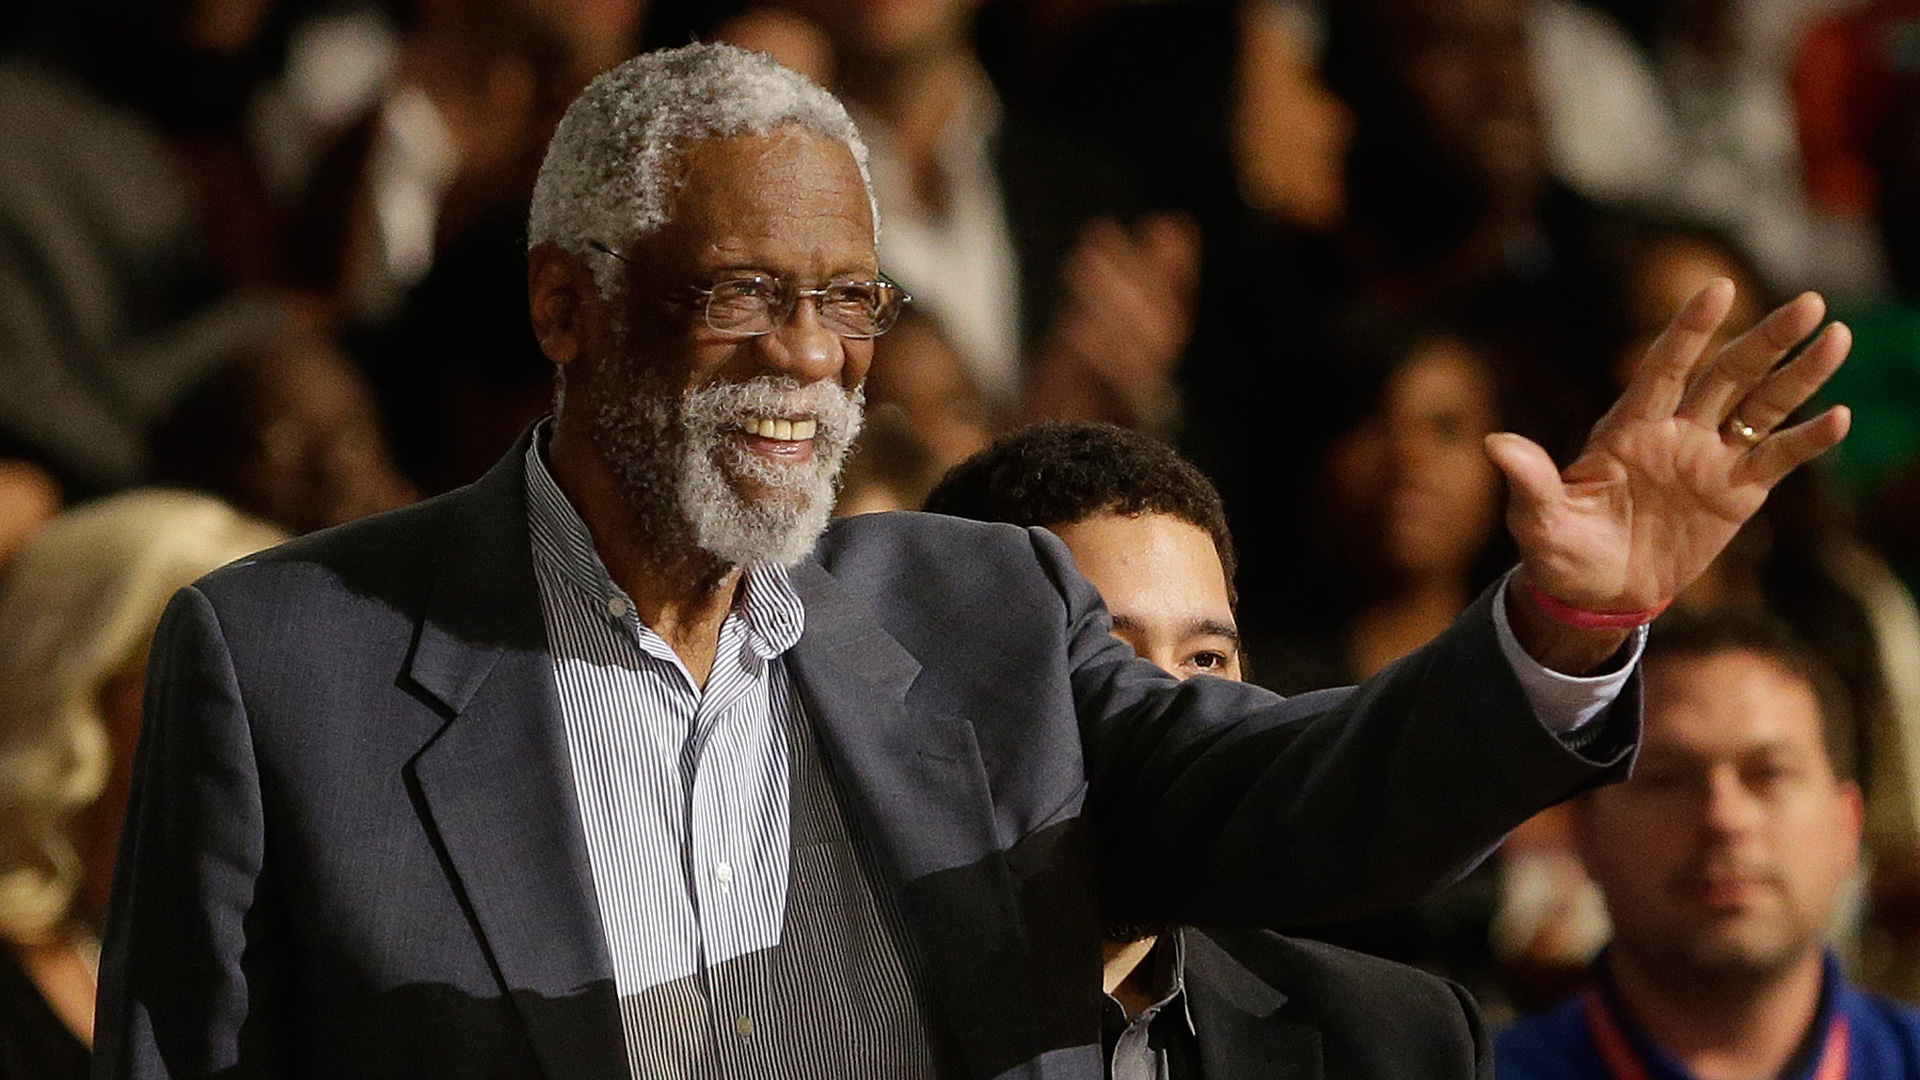 Bill Russell delivers epic line after winning National Basketball Association lifetime achievement award